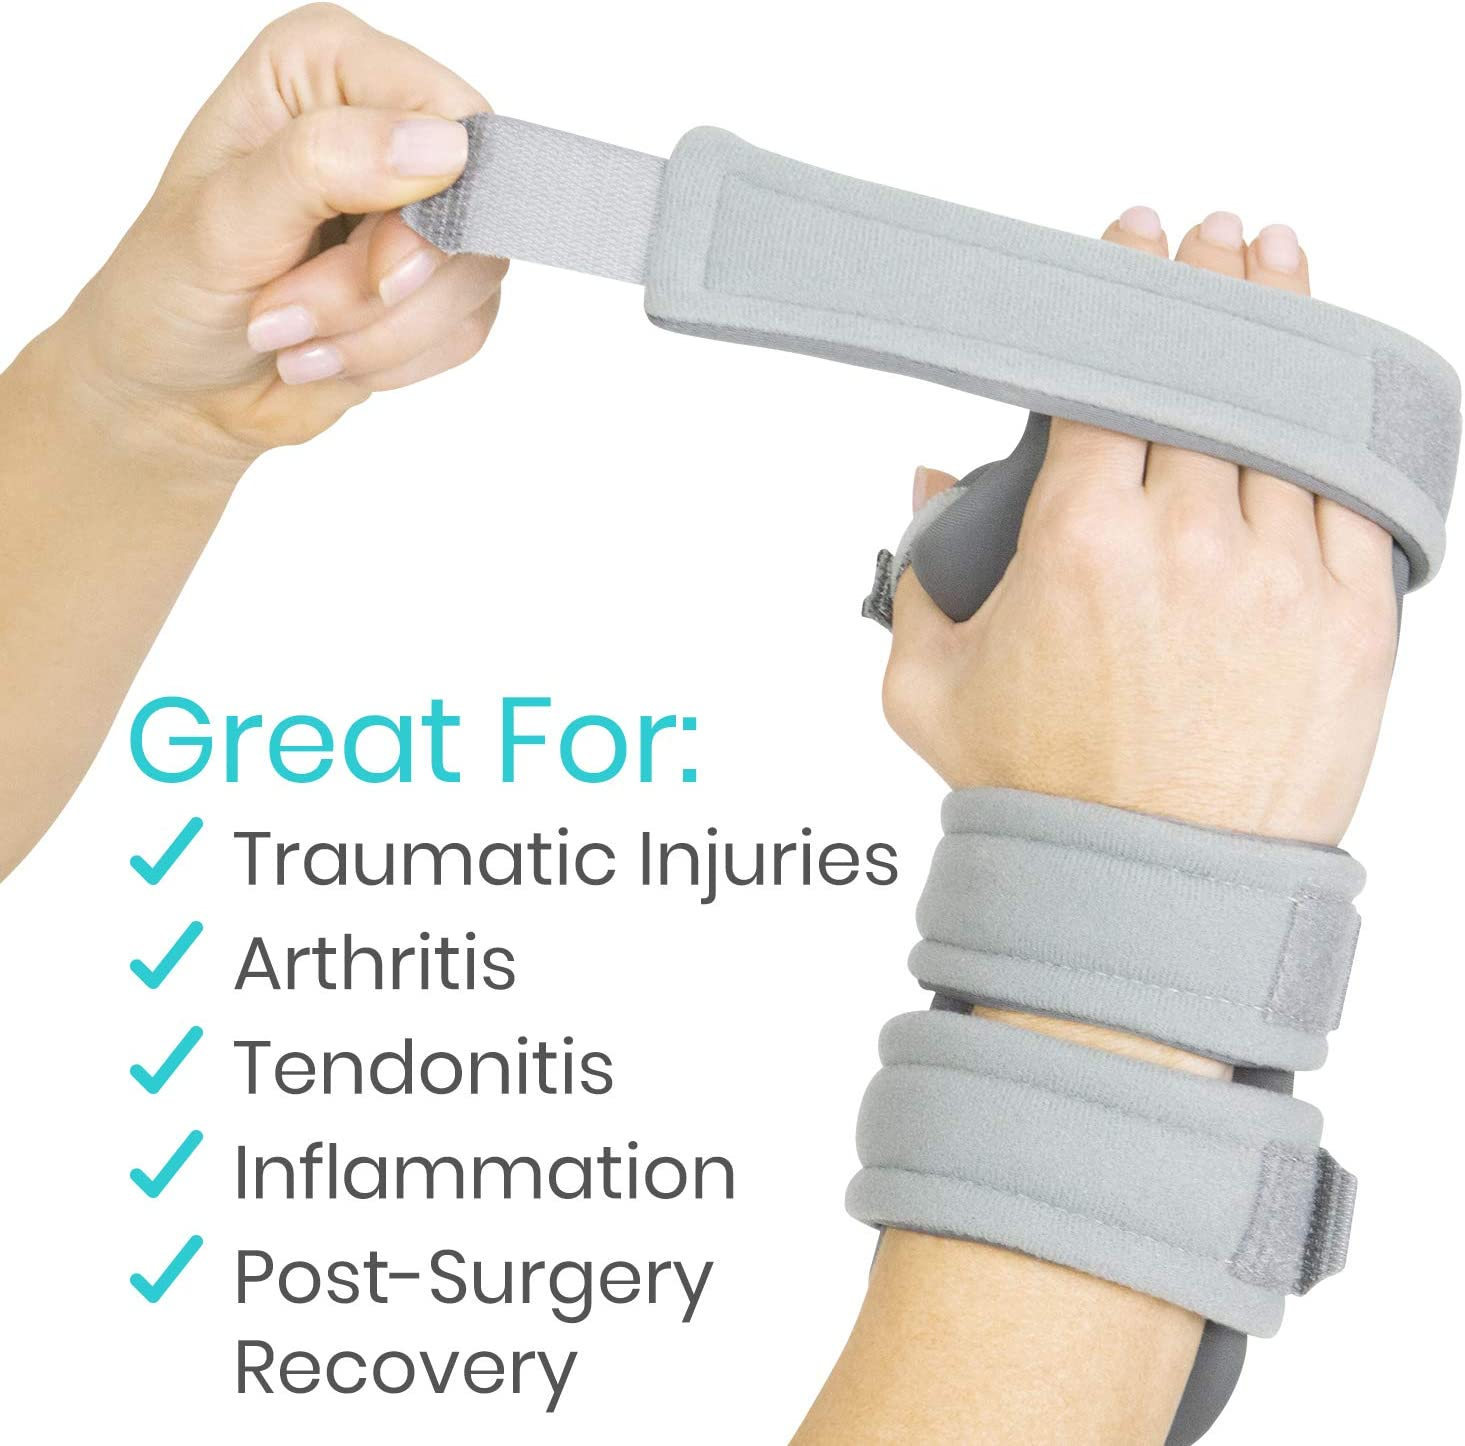 Right Tendonitis for Arthritis - Night Immobilizer Wrist Finger Brace Vive Resting Hand Splint Functional Support for Sprains Fractures Thumb Stabilizer Wrap Carpal Tunnel Pain Medium